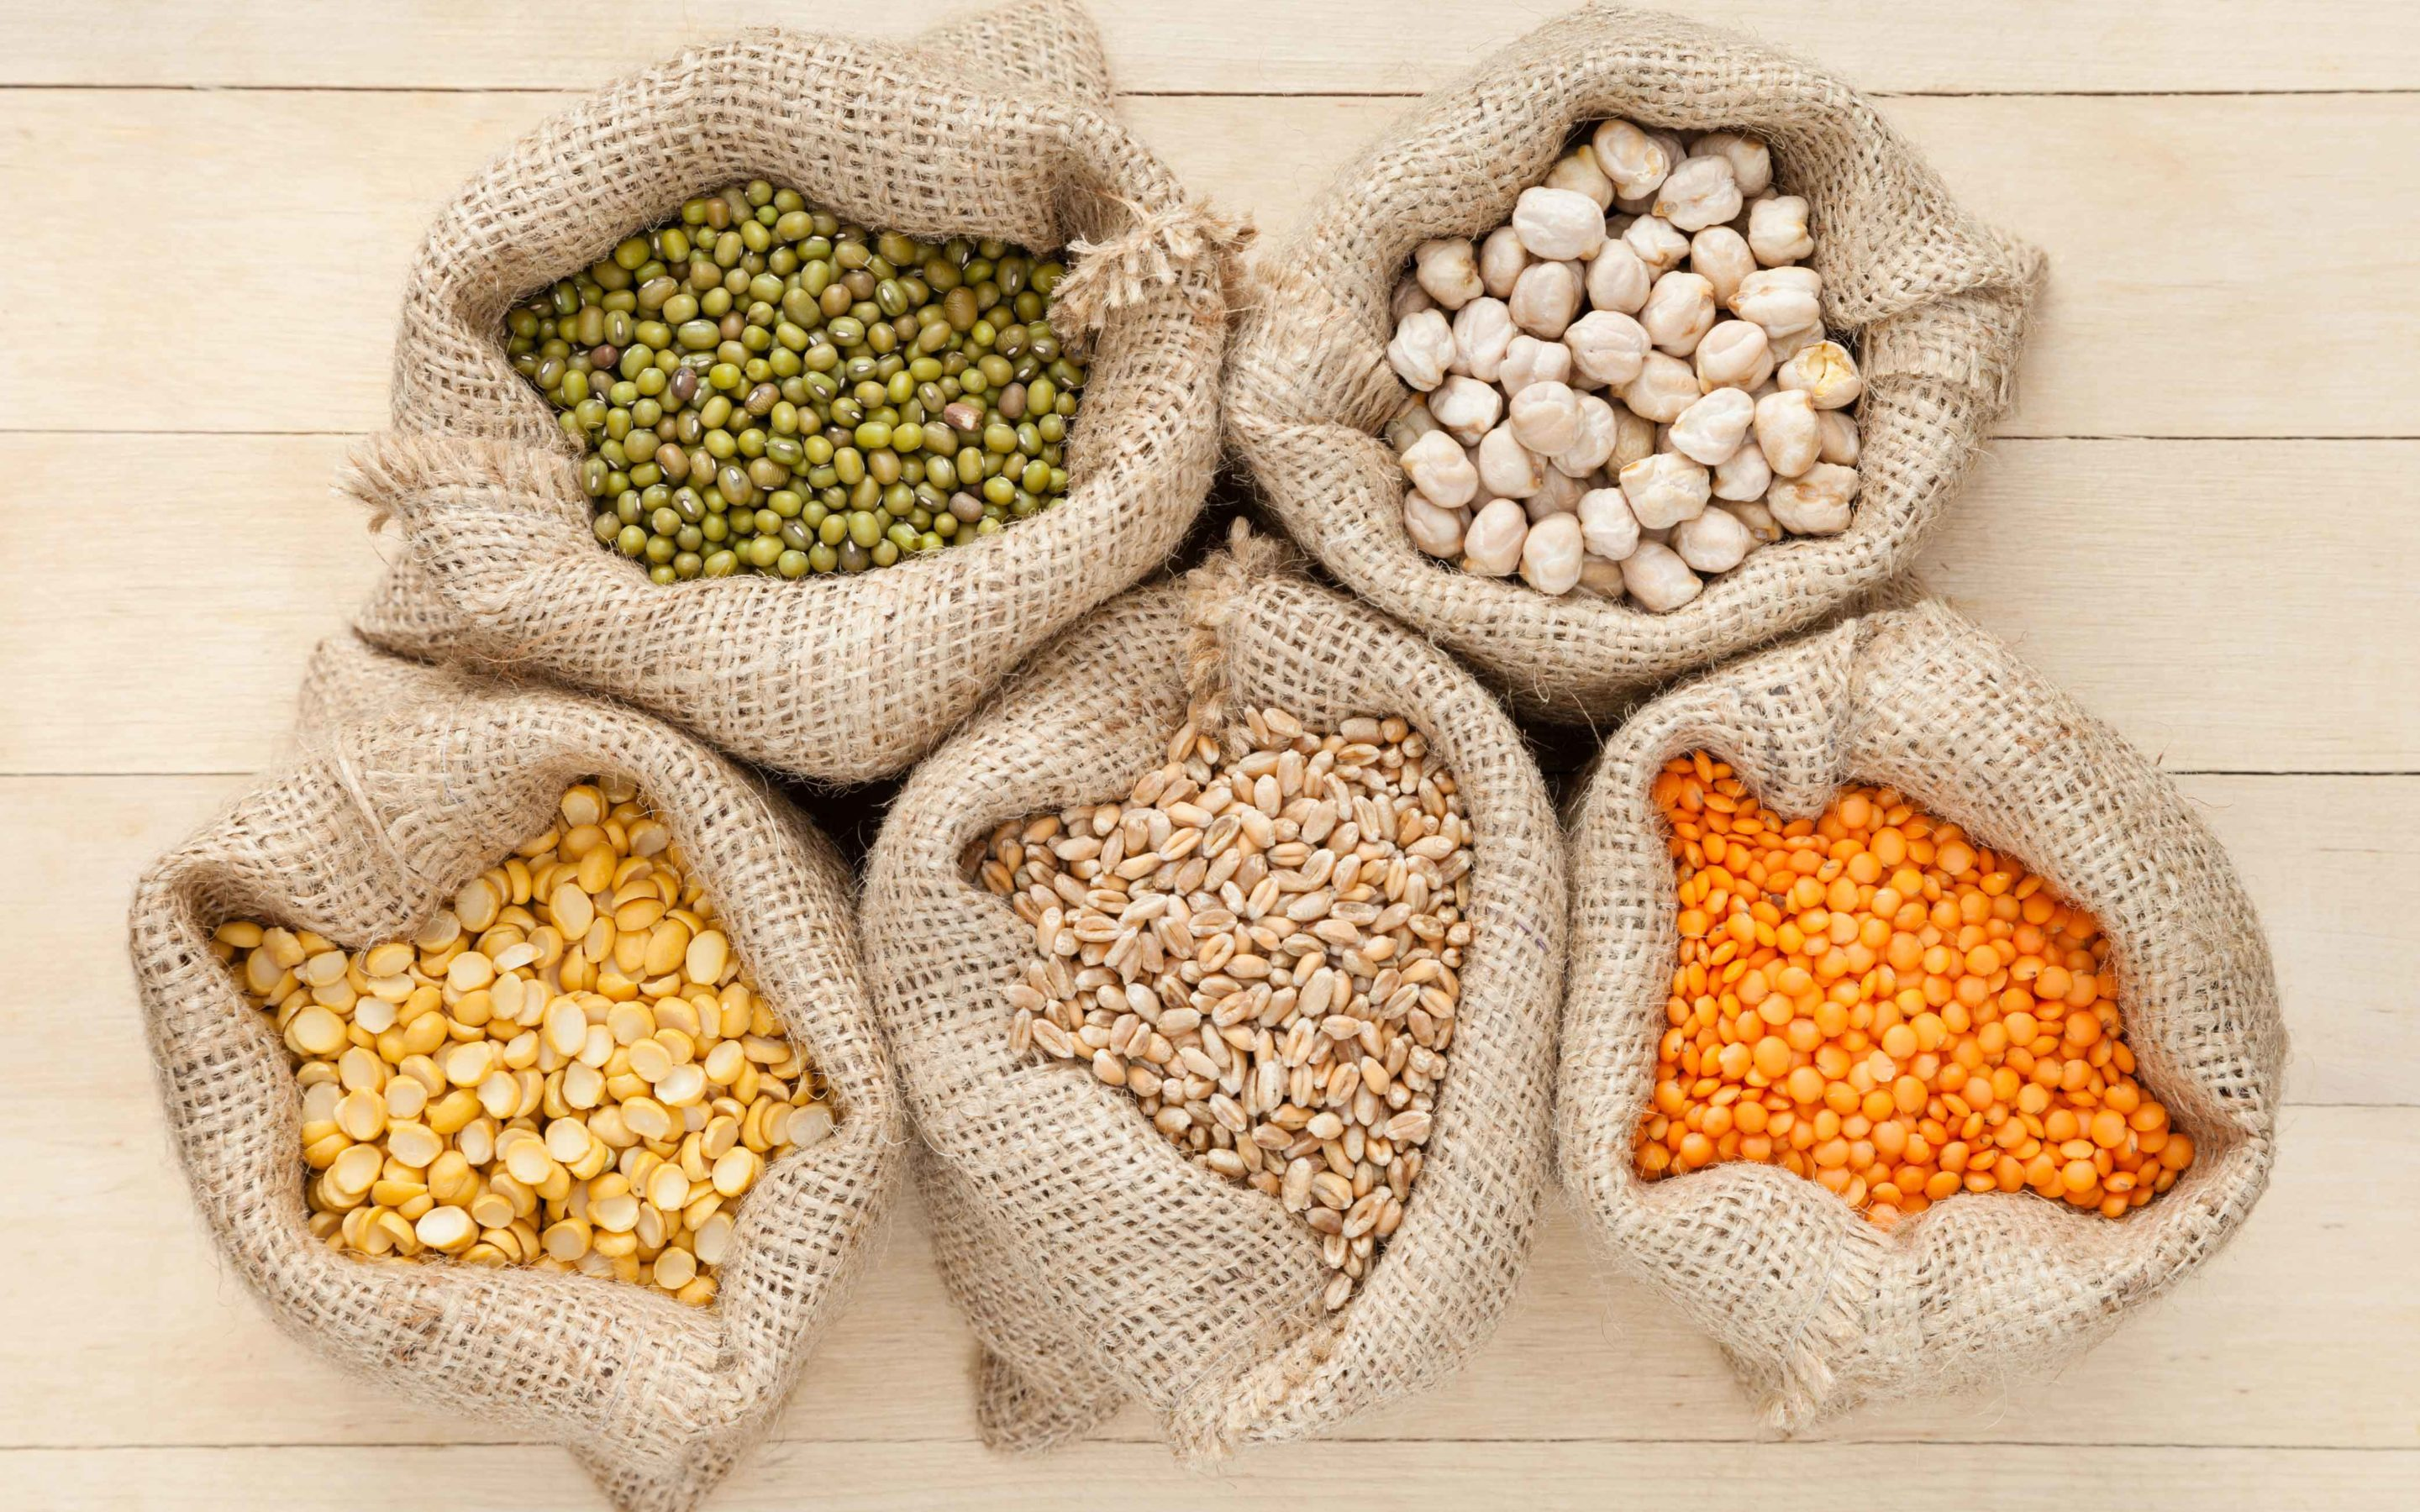 Top Vegetarian Proteins To Help With Diabetes And Weight Loss